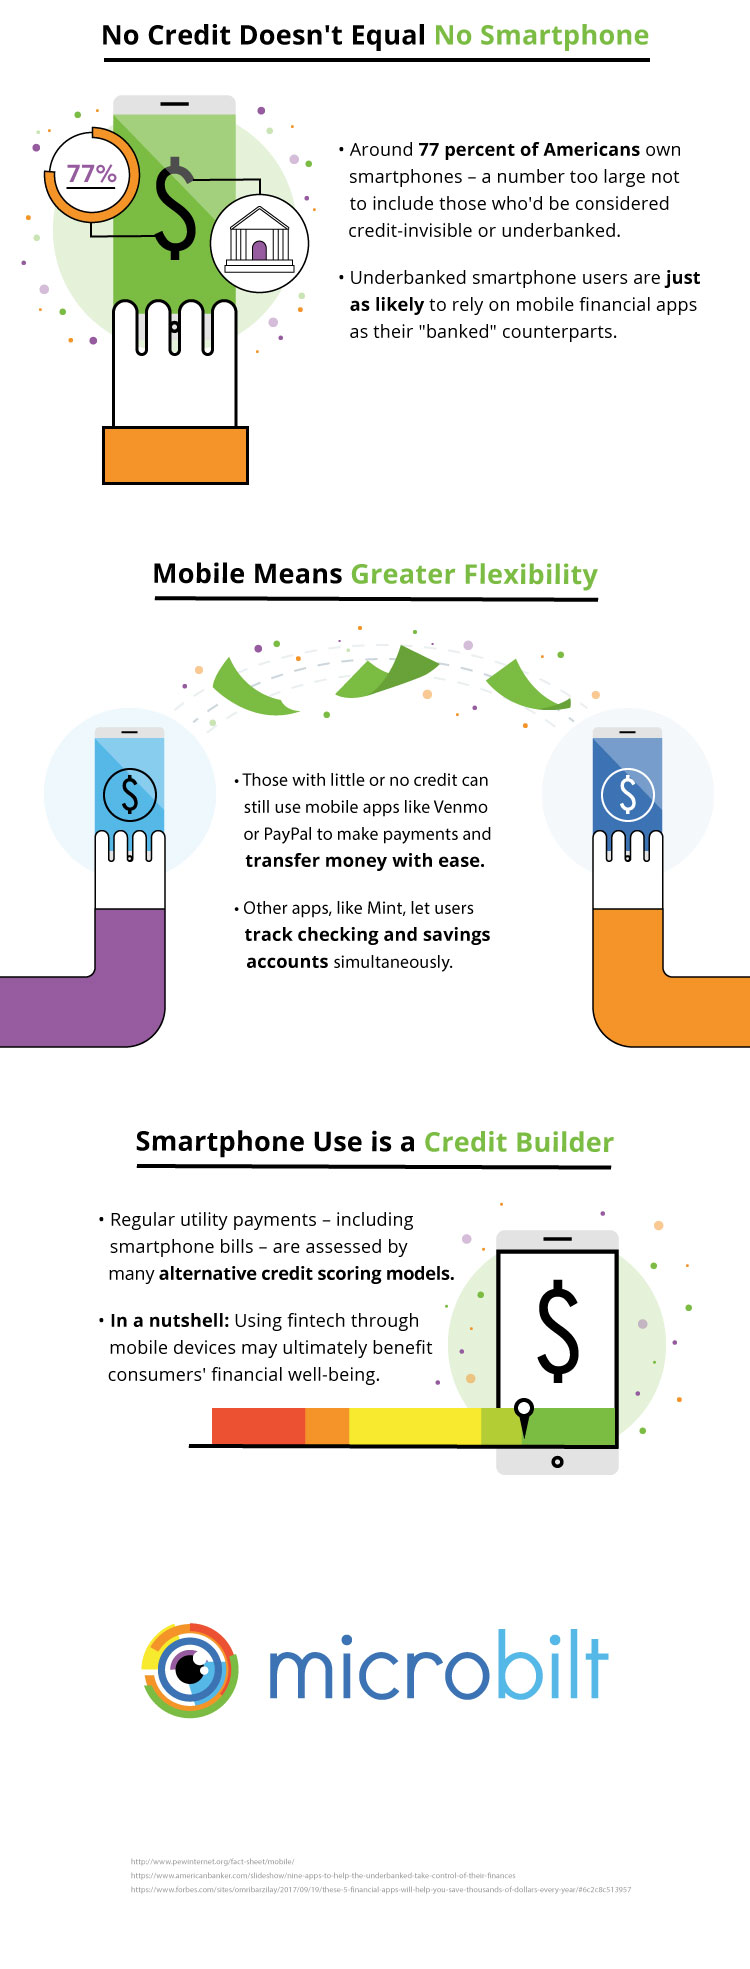 Infographic: The benefits of fintech for the credit invisible